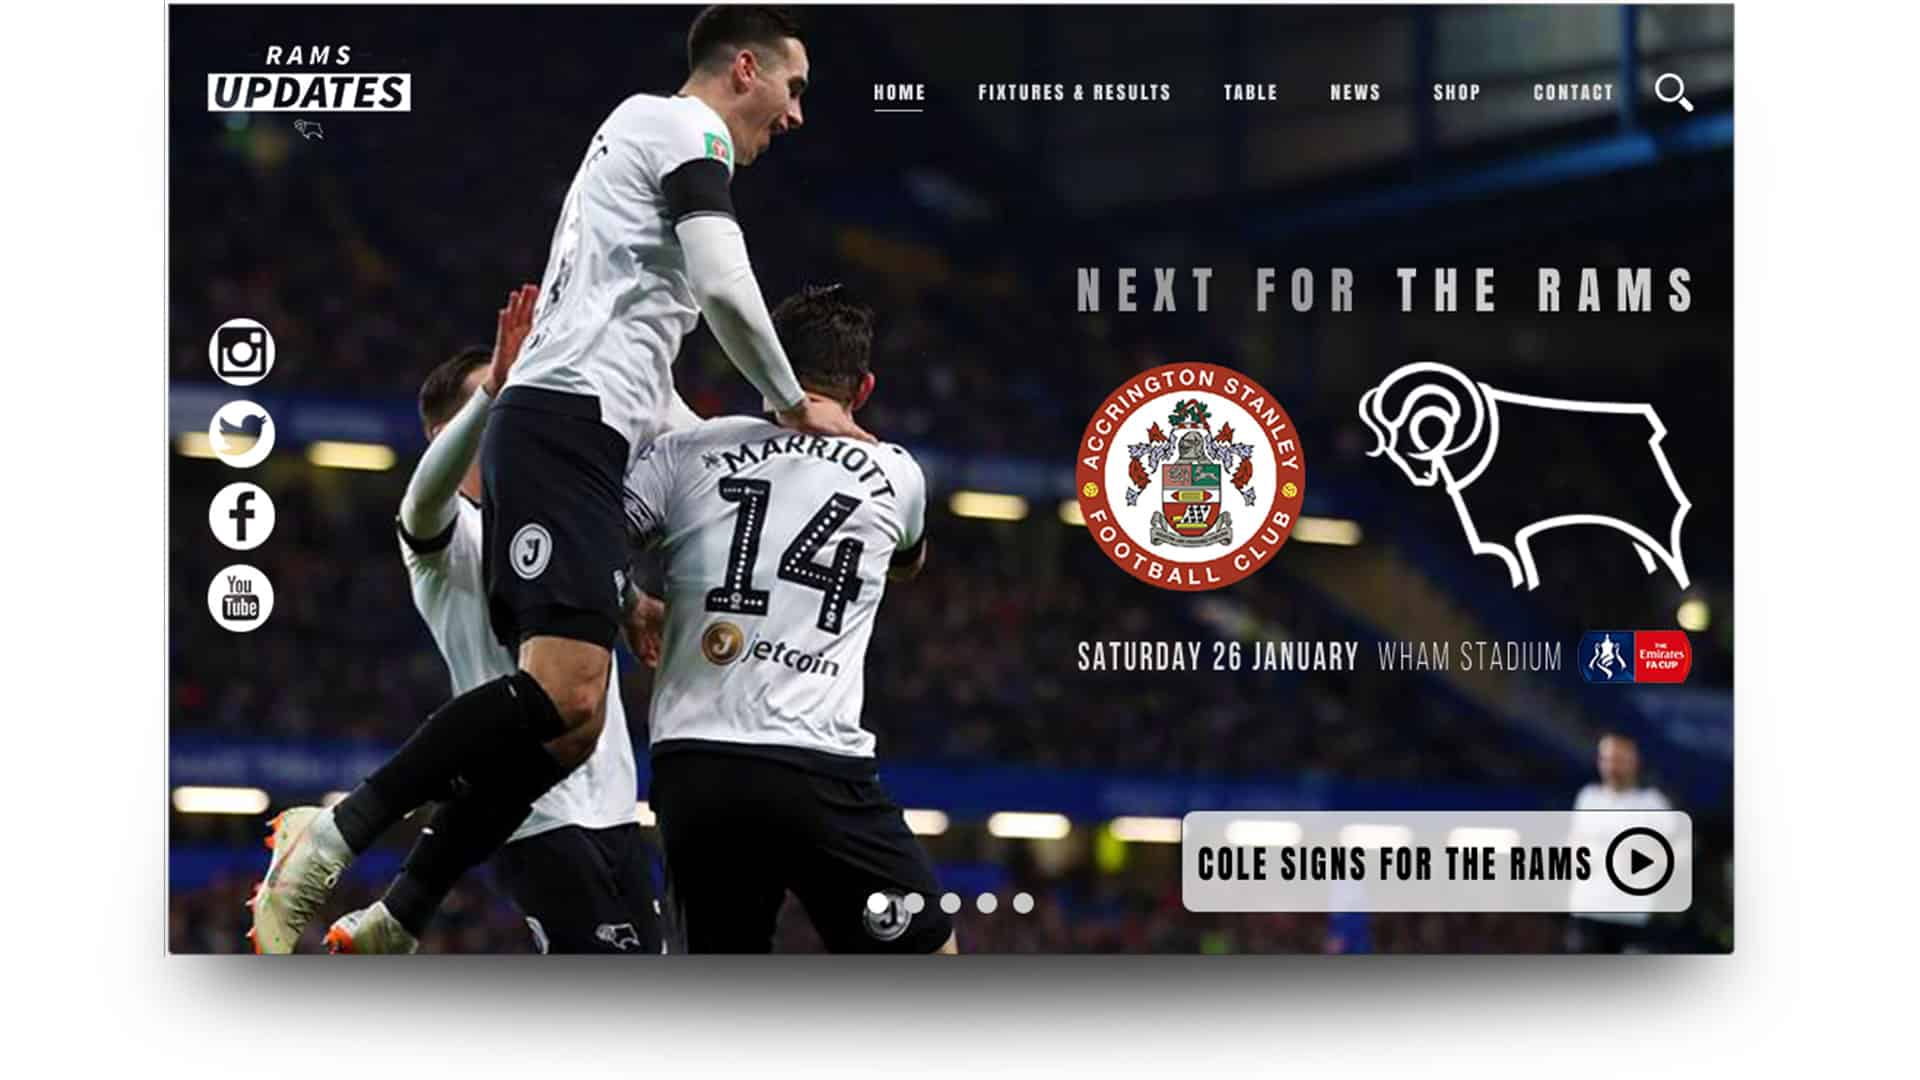 rams updates - wordpress website design